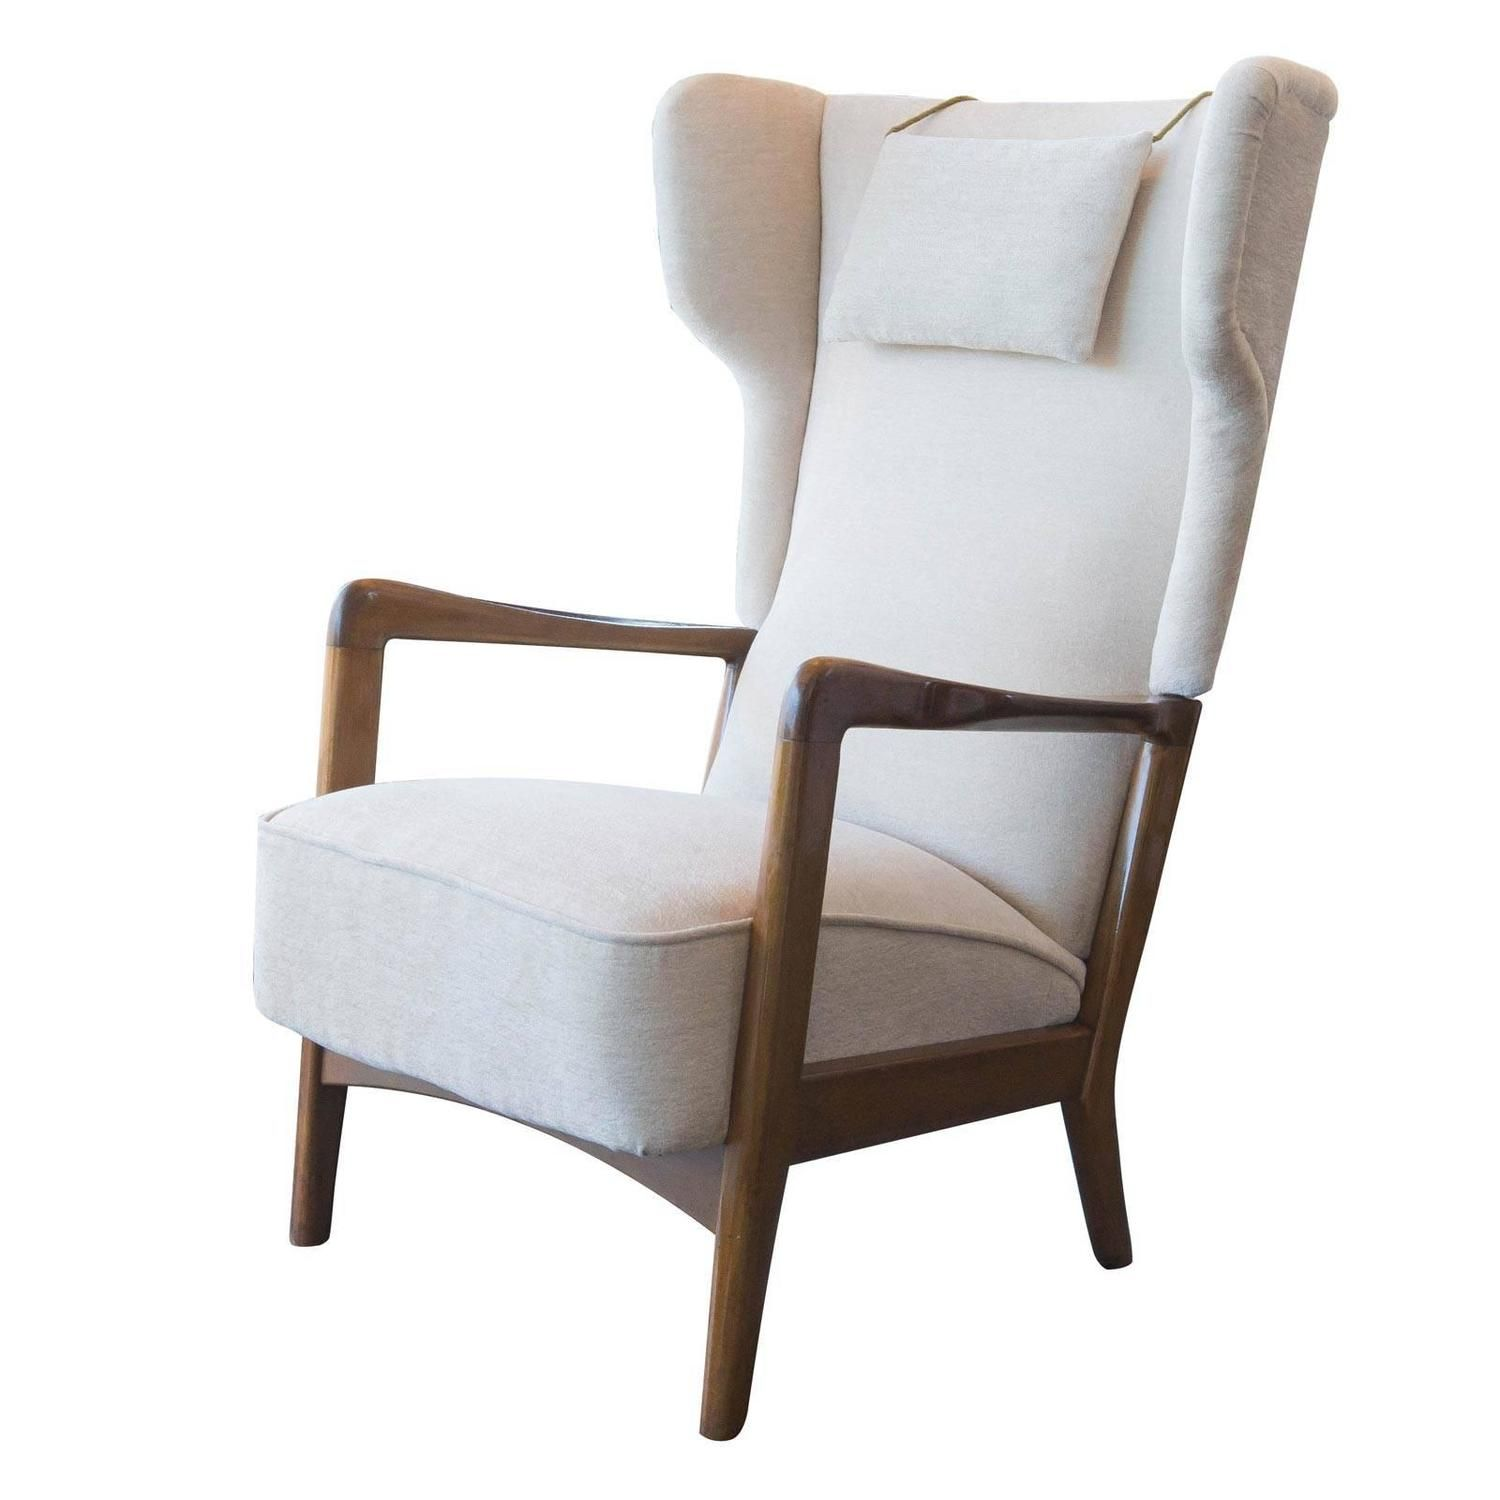 Fritz Hansen Midcentury High-Back Lounge Chair | From a unique collection of antique and modern armchairs at https://www.1stdibs.com/furniture/seating/armchairs/